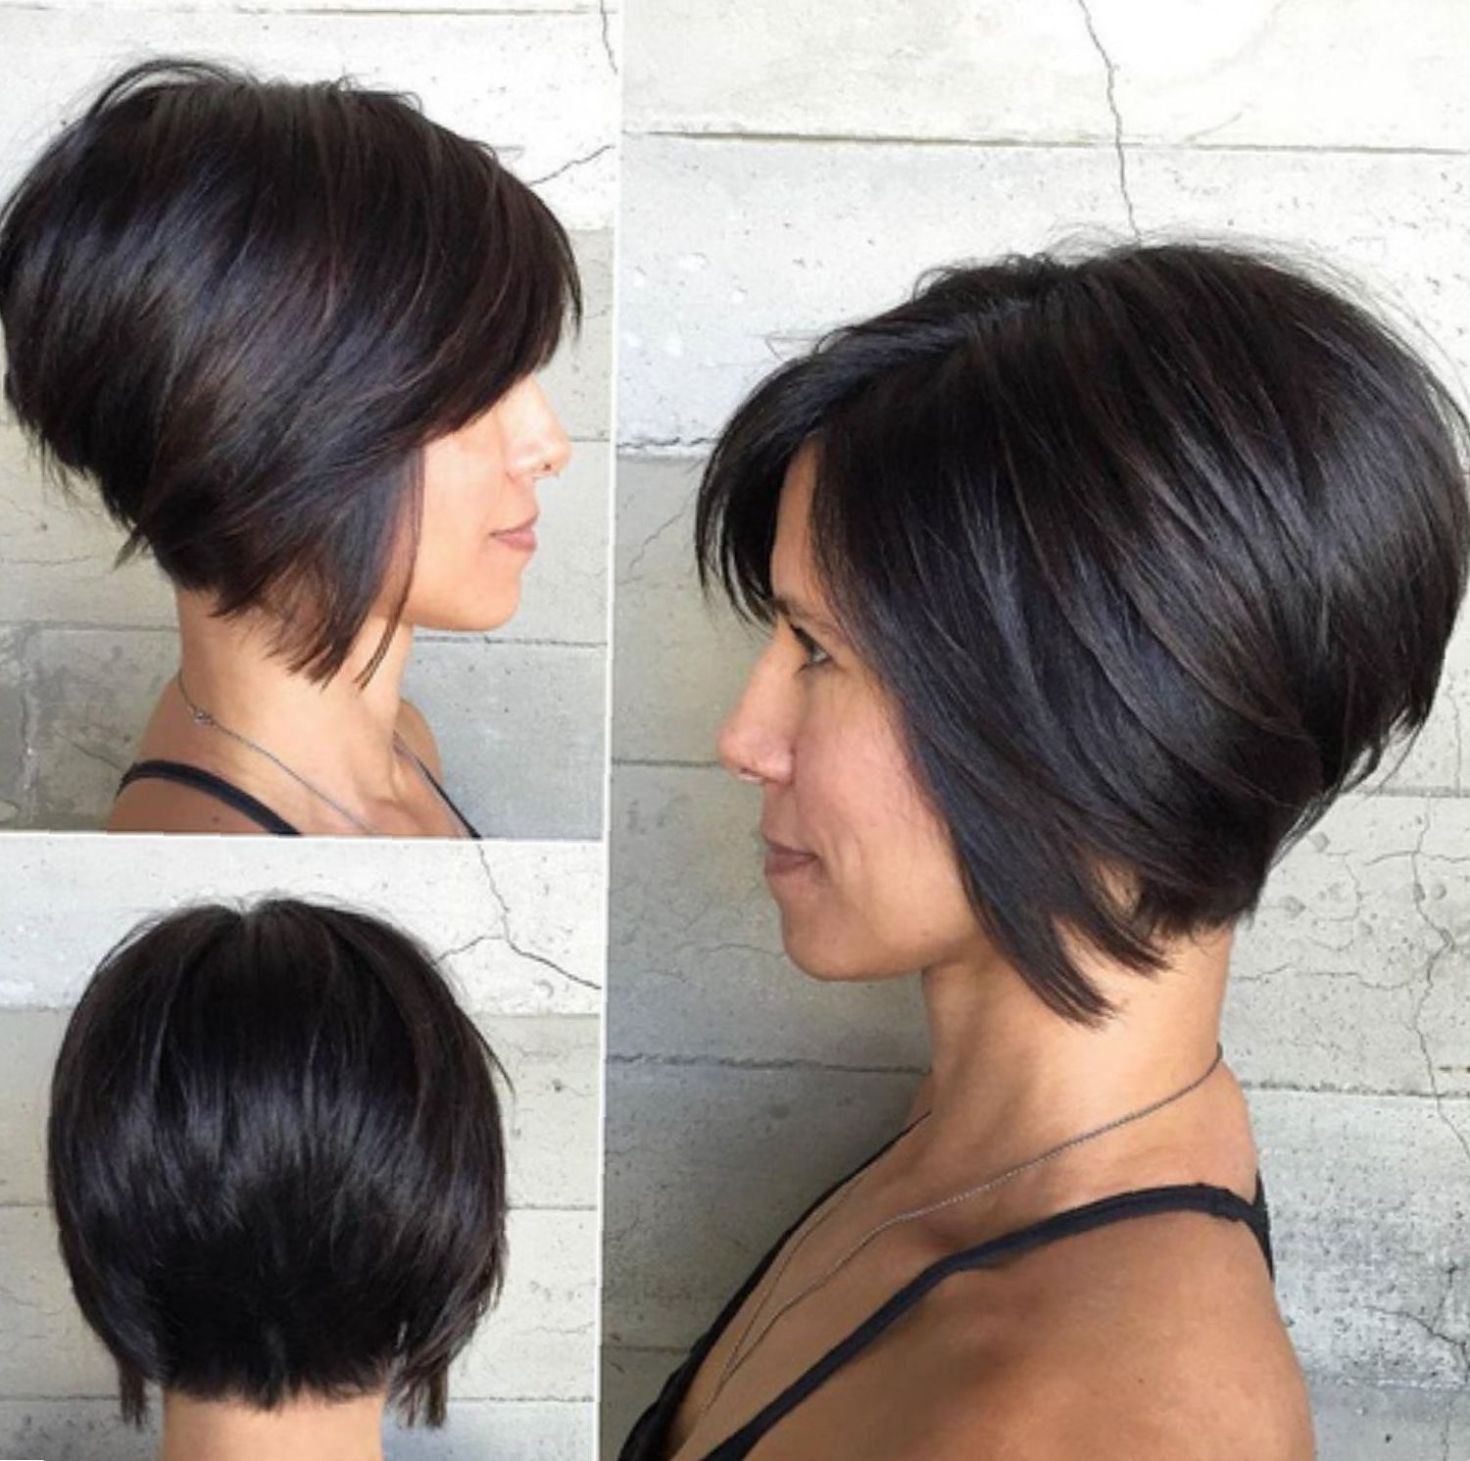 99 Wonderful Mind Blowing Short Curly Haircuts For Fine Hair 2020 In 2020 Thick Hair Styles Short Inverted Bob Haircuts Inverted Bob Haircuts